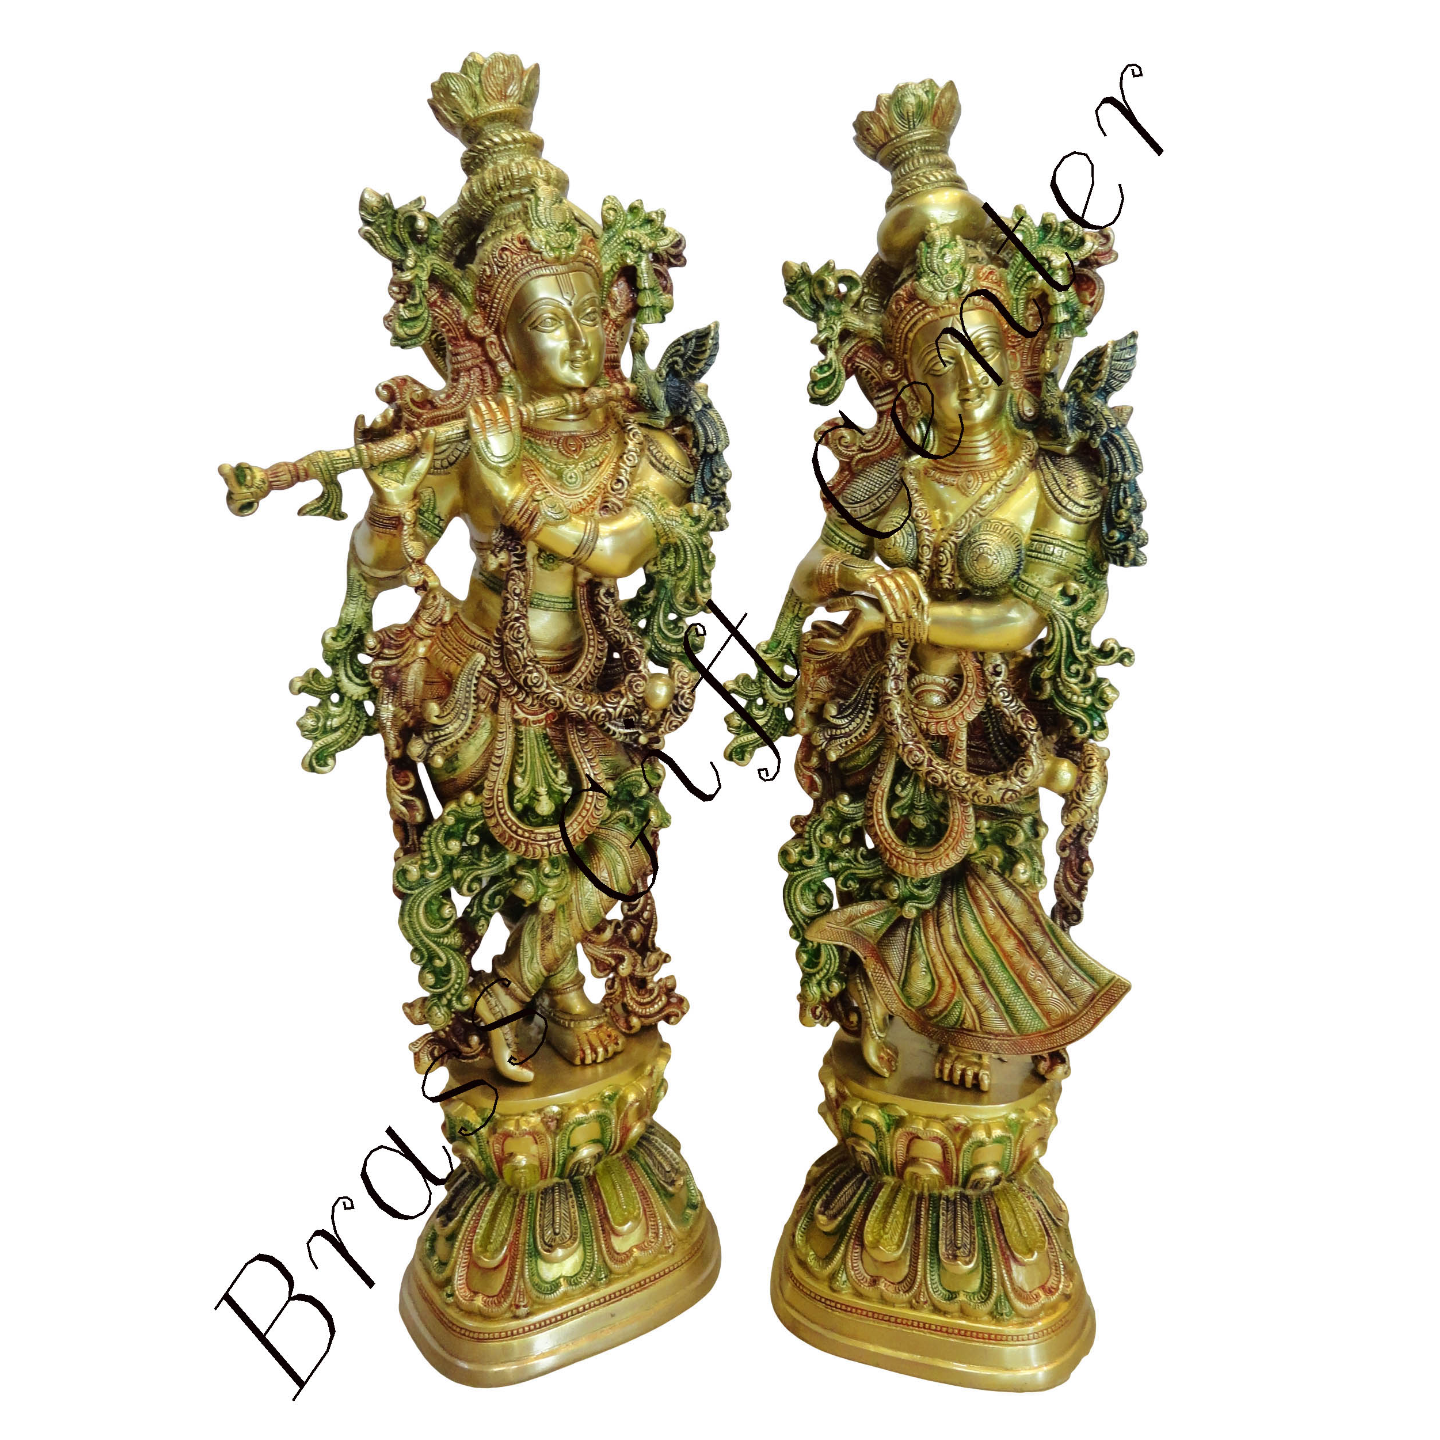 Brass Radha Krishna Staute Idol Murti in Multicolour lacquer finish- 8.5*6*29 Inch  (BS073)